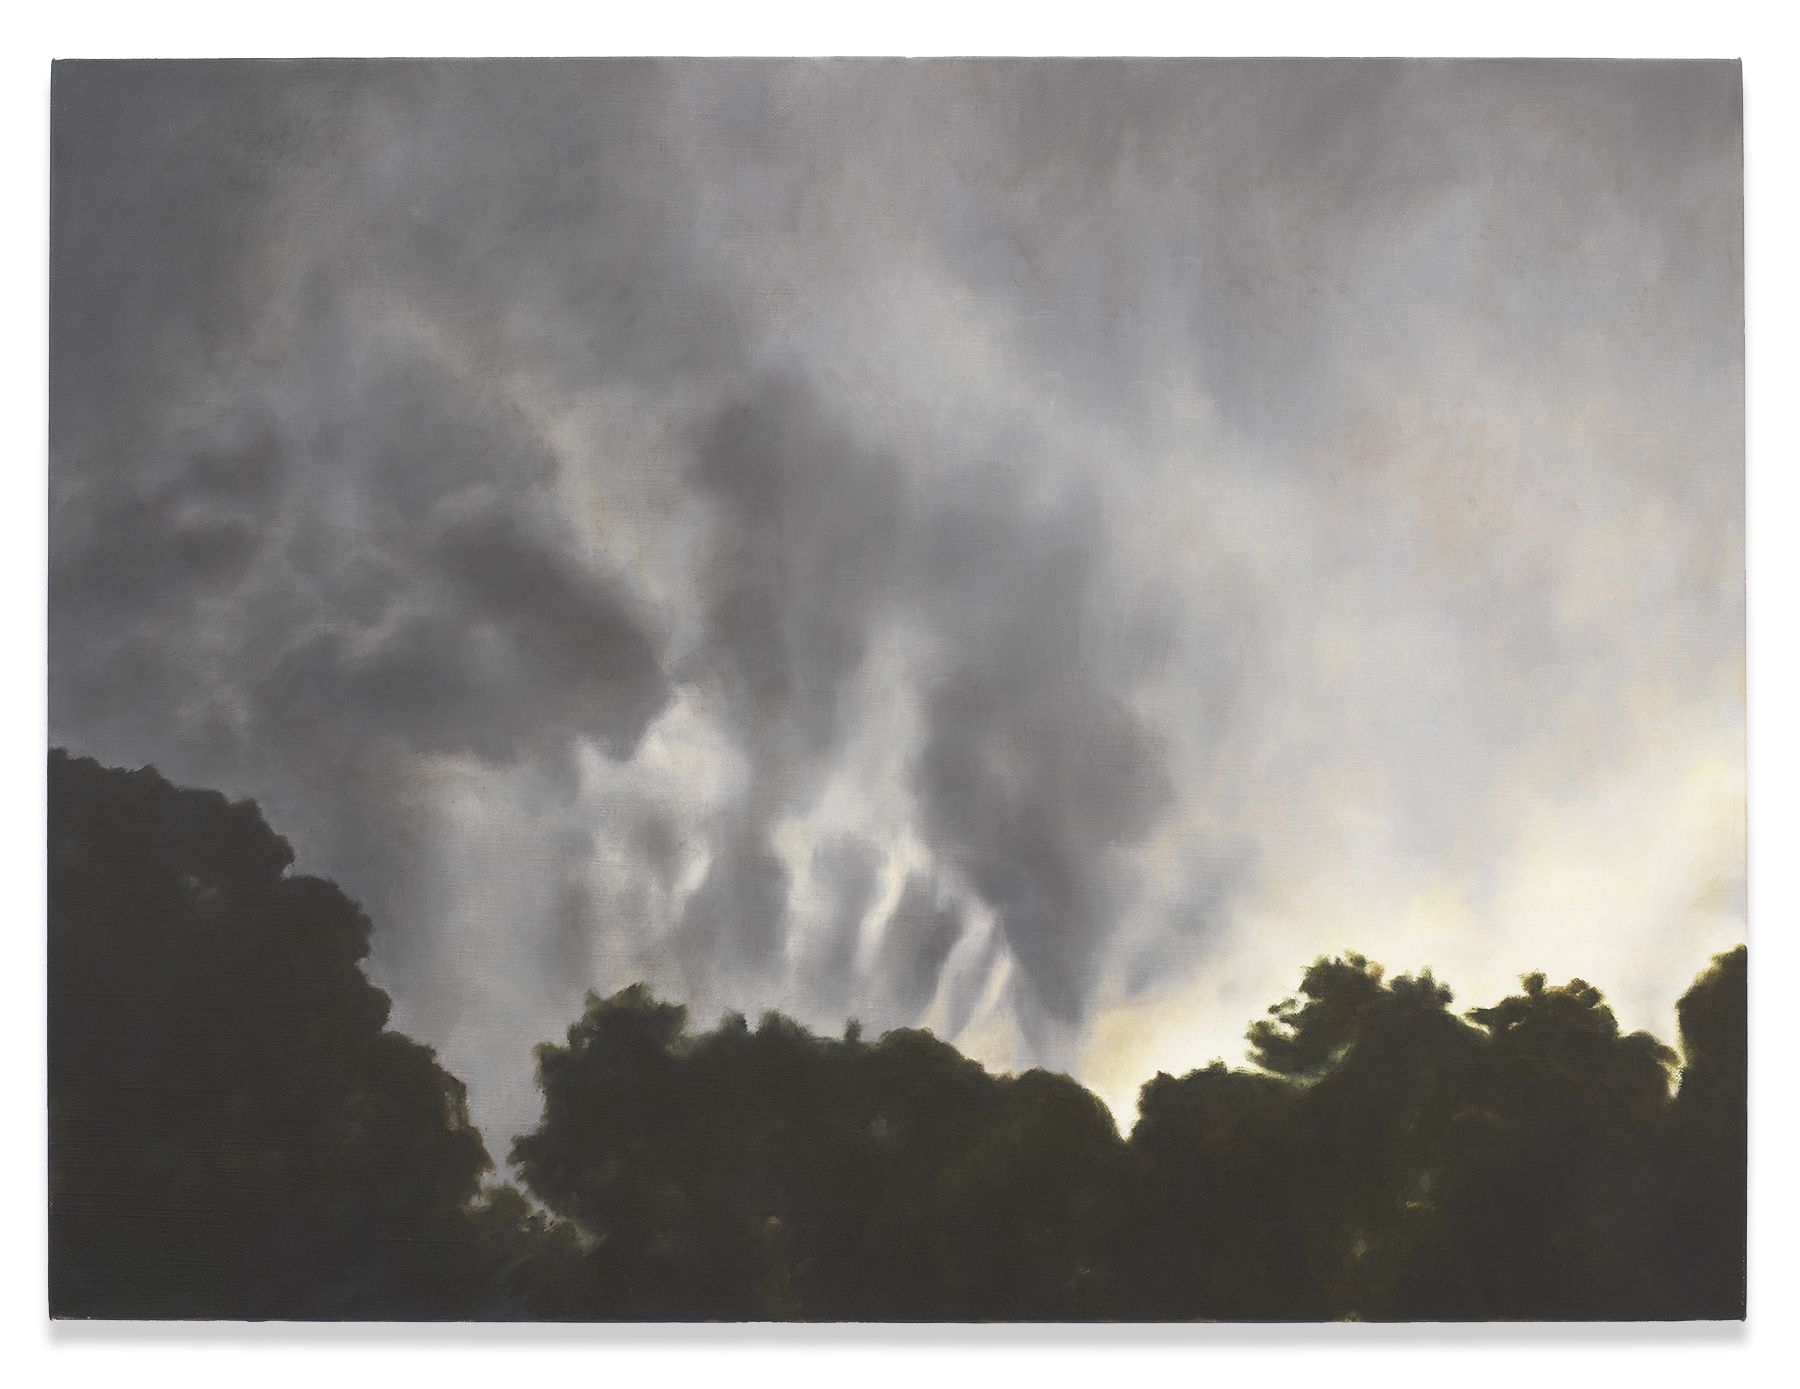 Clouds Shaping Night, 2013, Oil on linen, 24 1/4 x 32 inches, 61.6 x 81.3 cm, MMG#30403